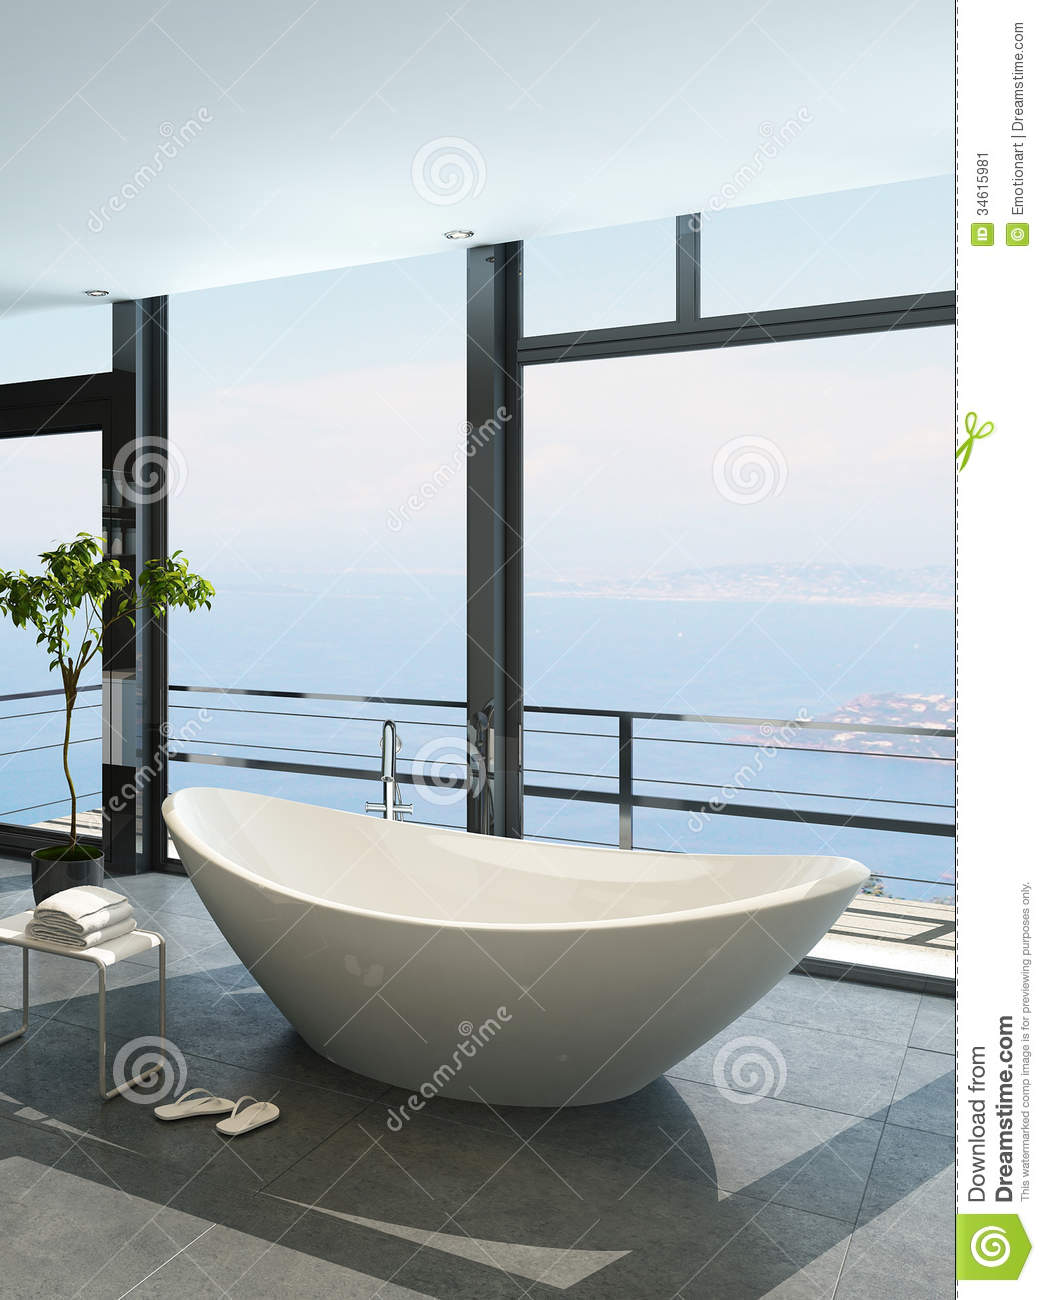 Bedroom 3D Model 5 furthermore Stock Image Expensive Luxury Bathtub Against Panoramic Window Seascape View D Rendering Image34615981 as well Lovely Canta Contemporary 6 Door Furniture Shoe Cabi  With Mirrored Front And Nice Rug Decor further Unique Pendant Light Swinging Swing further Modern Italian Lcd Black Wall Unit Design Ipc217. on beautiful interior design bathroom